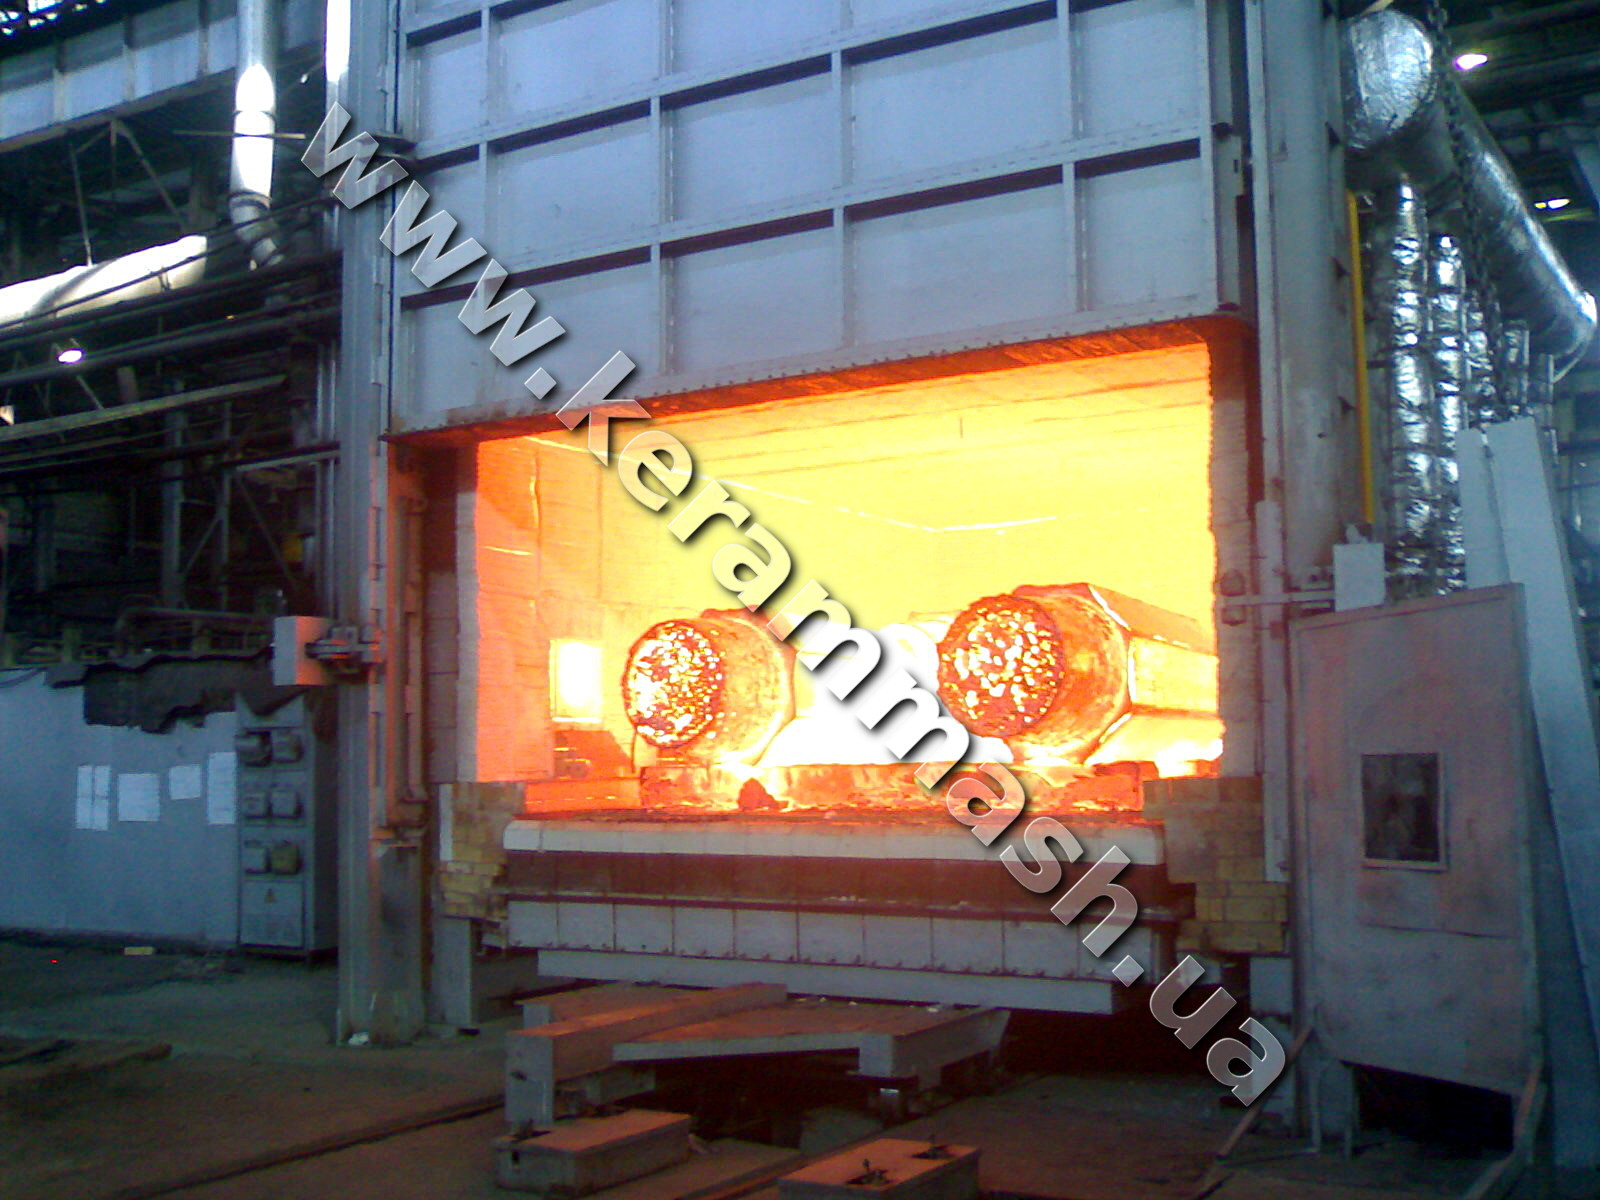 Industrial gas chamber bogie hearth furnace for heating for forging